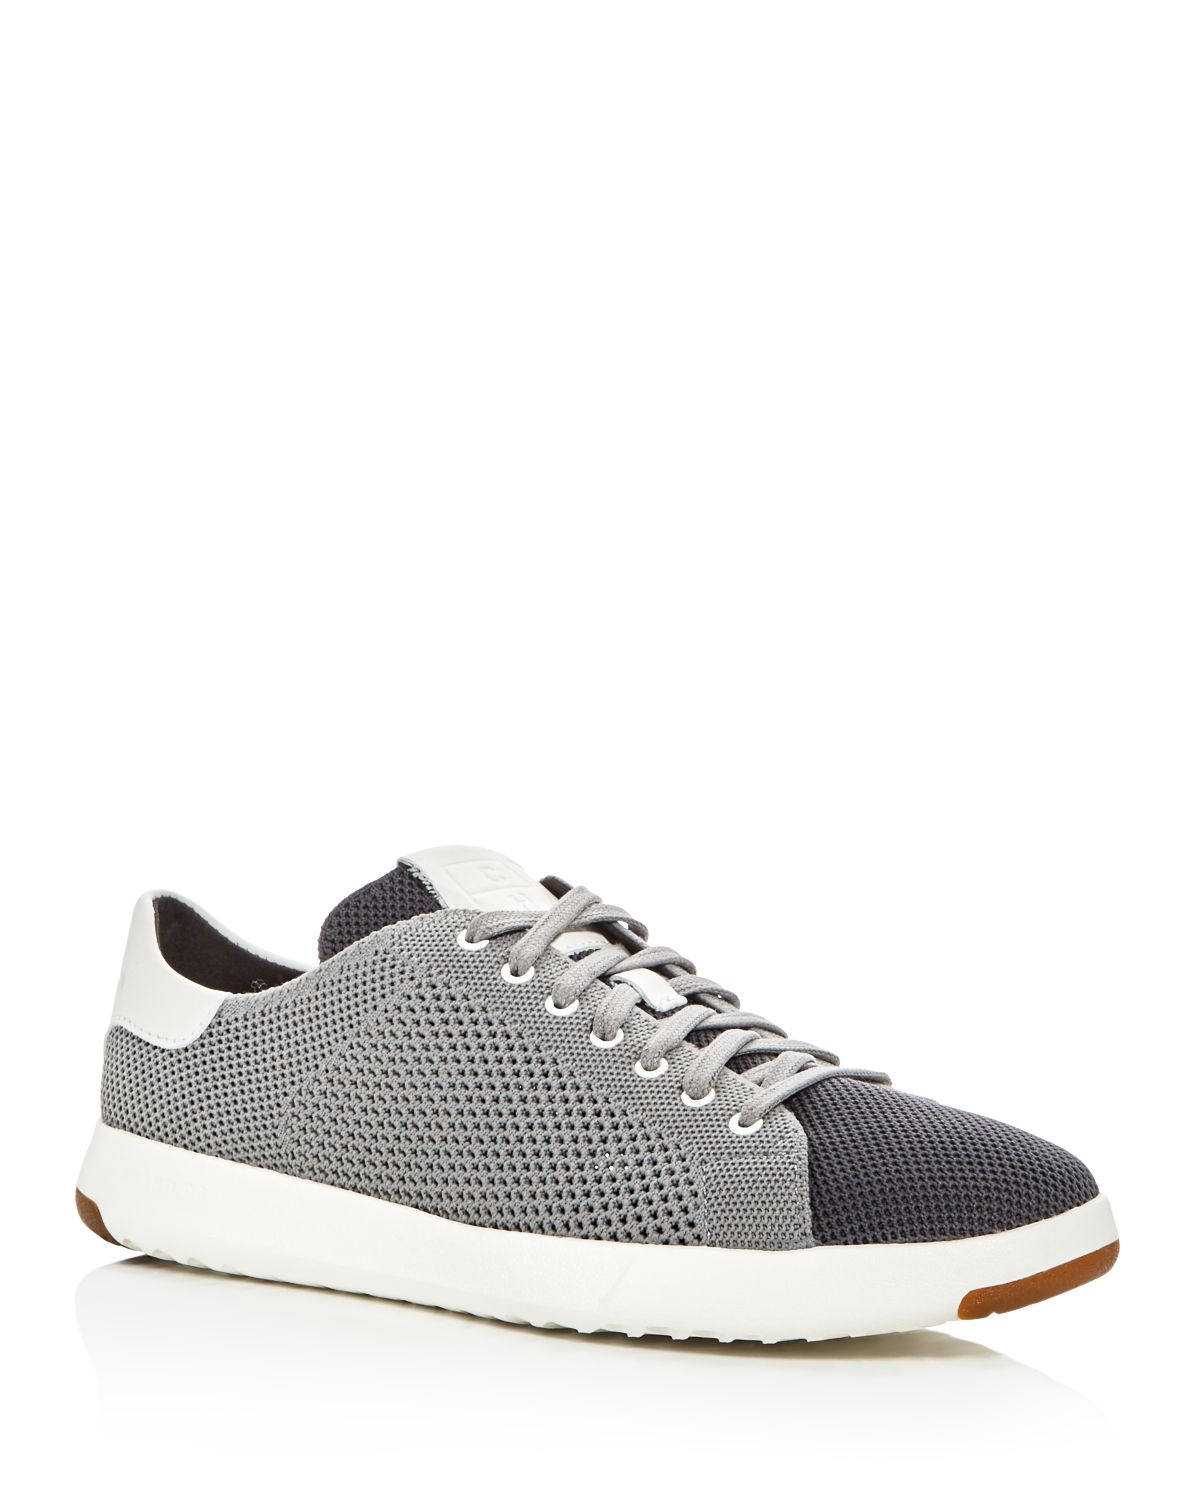 Cole Haan Men's Grandpro Stitchlite Knit Lace Up Sneakers